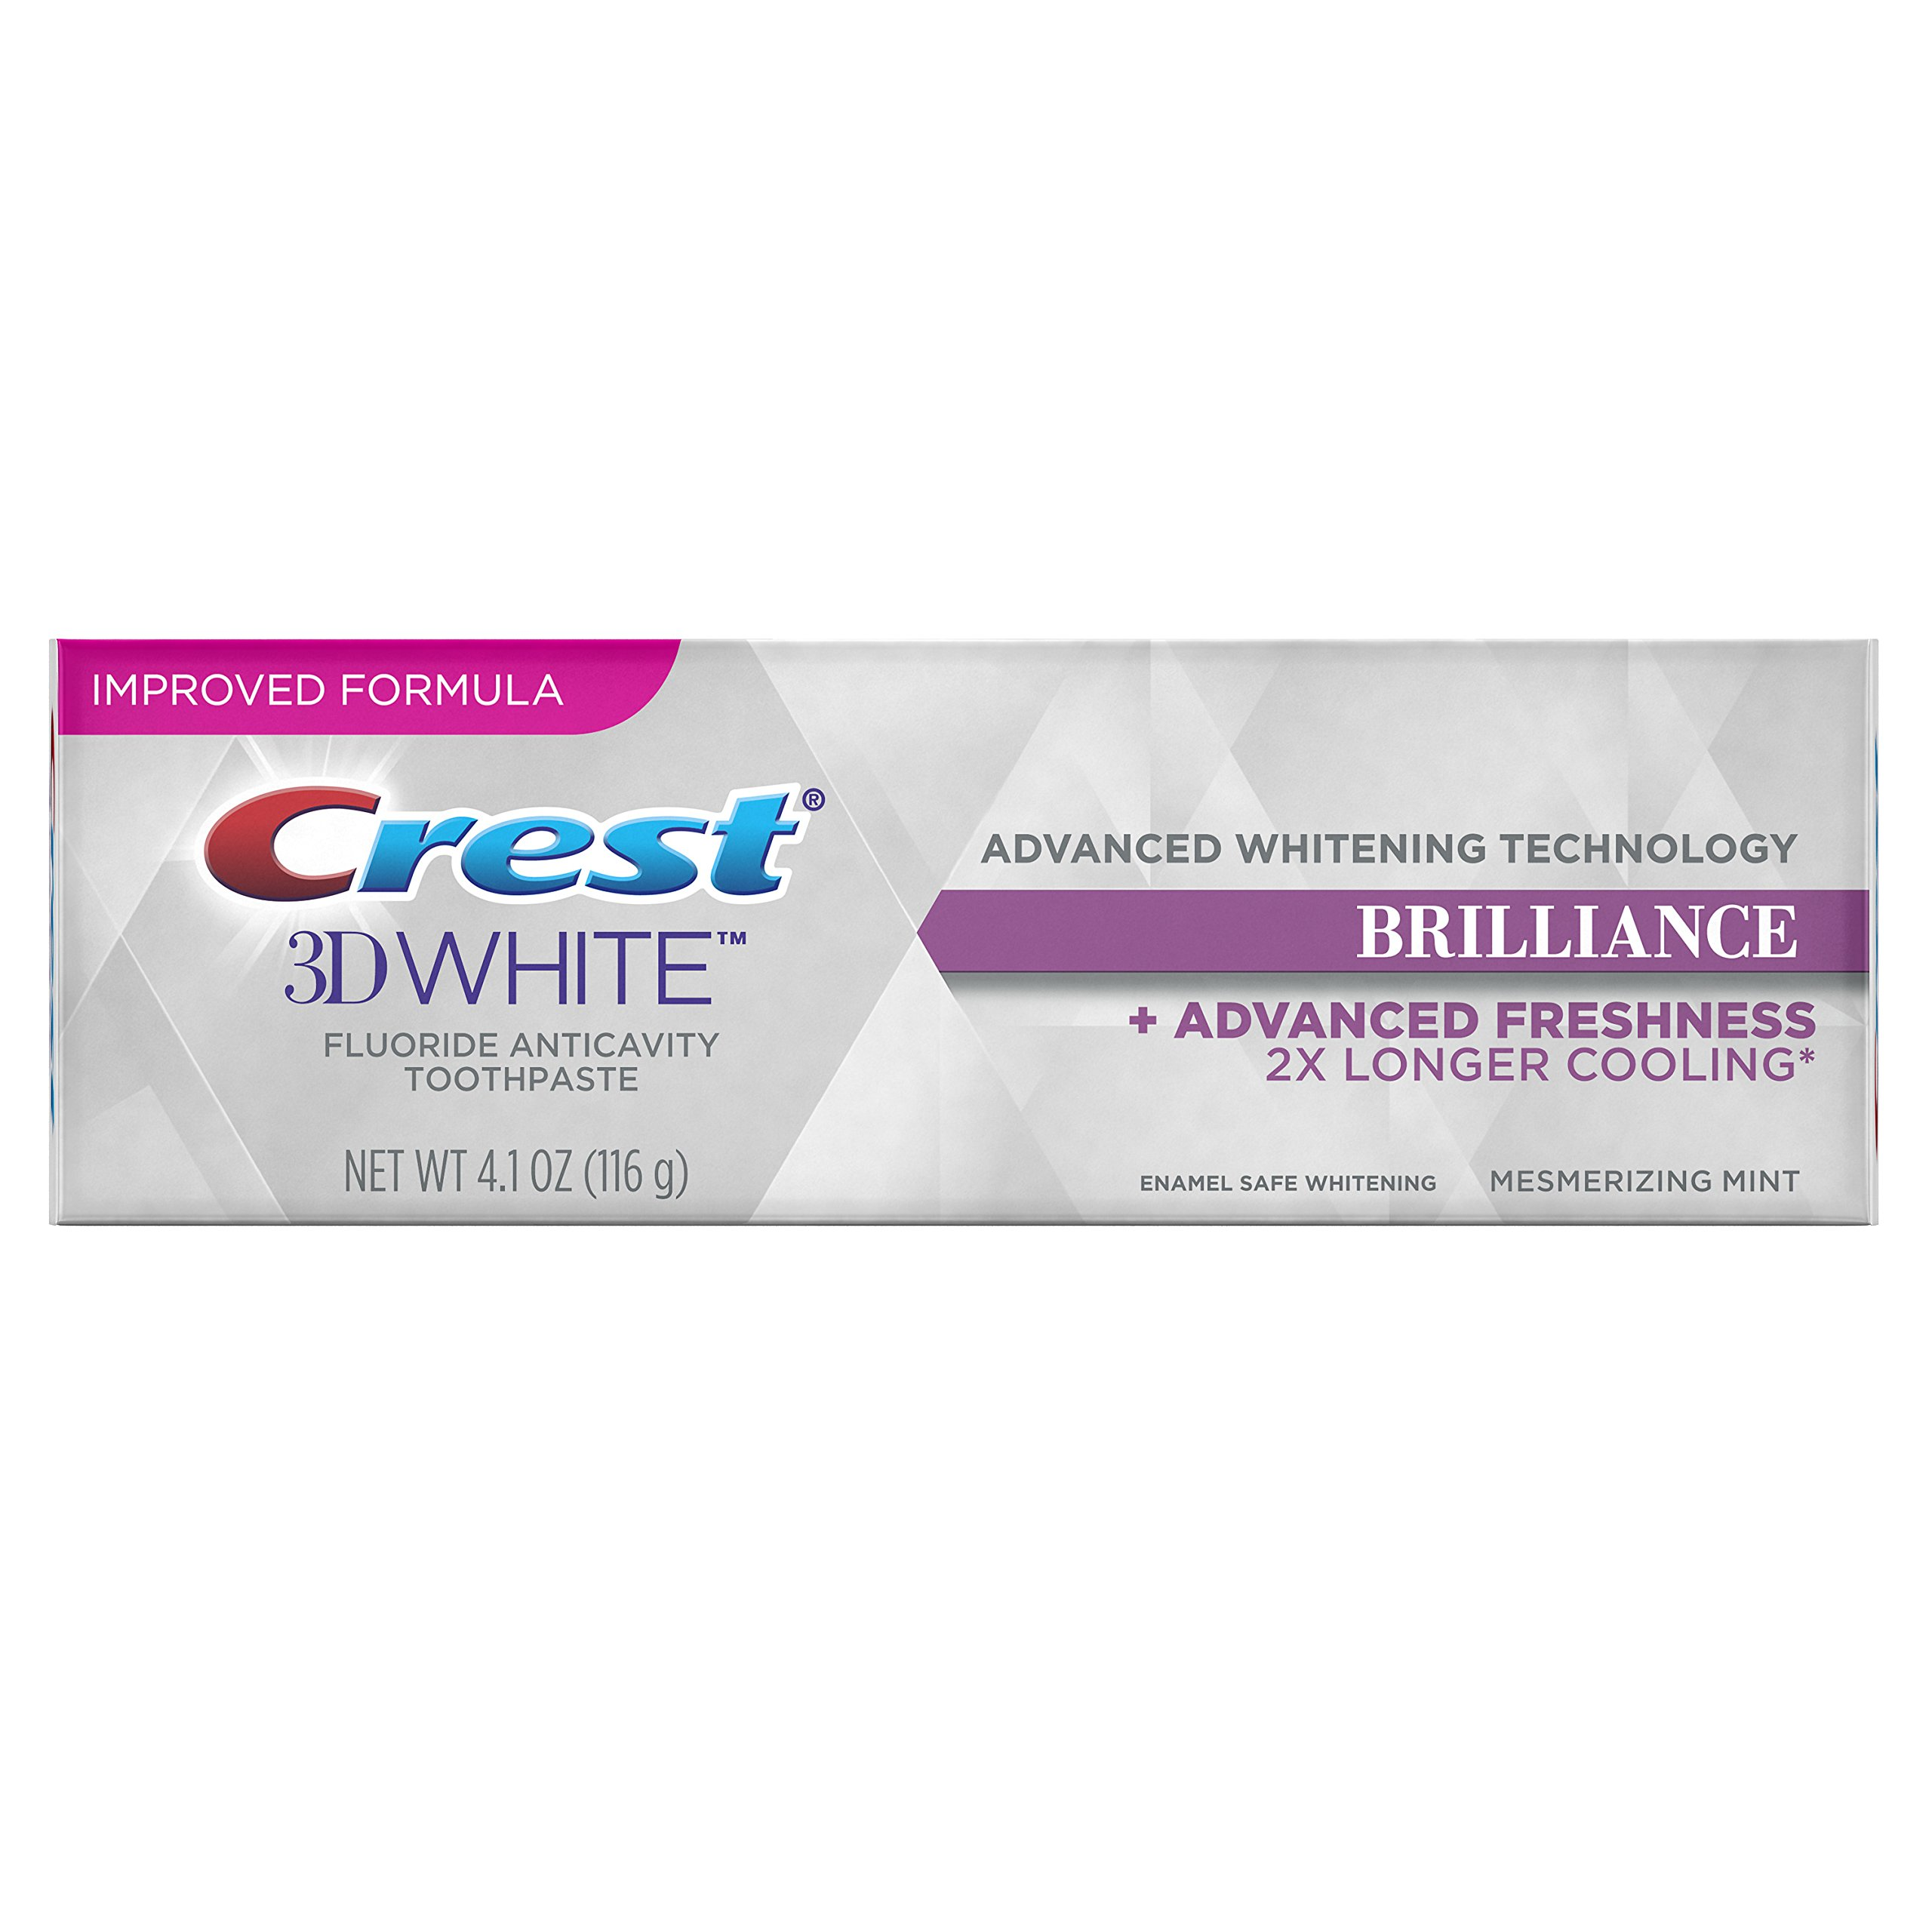 Crest 3D White Brilliance Mesmerizing Mint Toothpaste, 4.1 Ounce (Pack of 24) by Crest (Image #1)